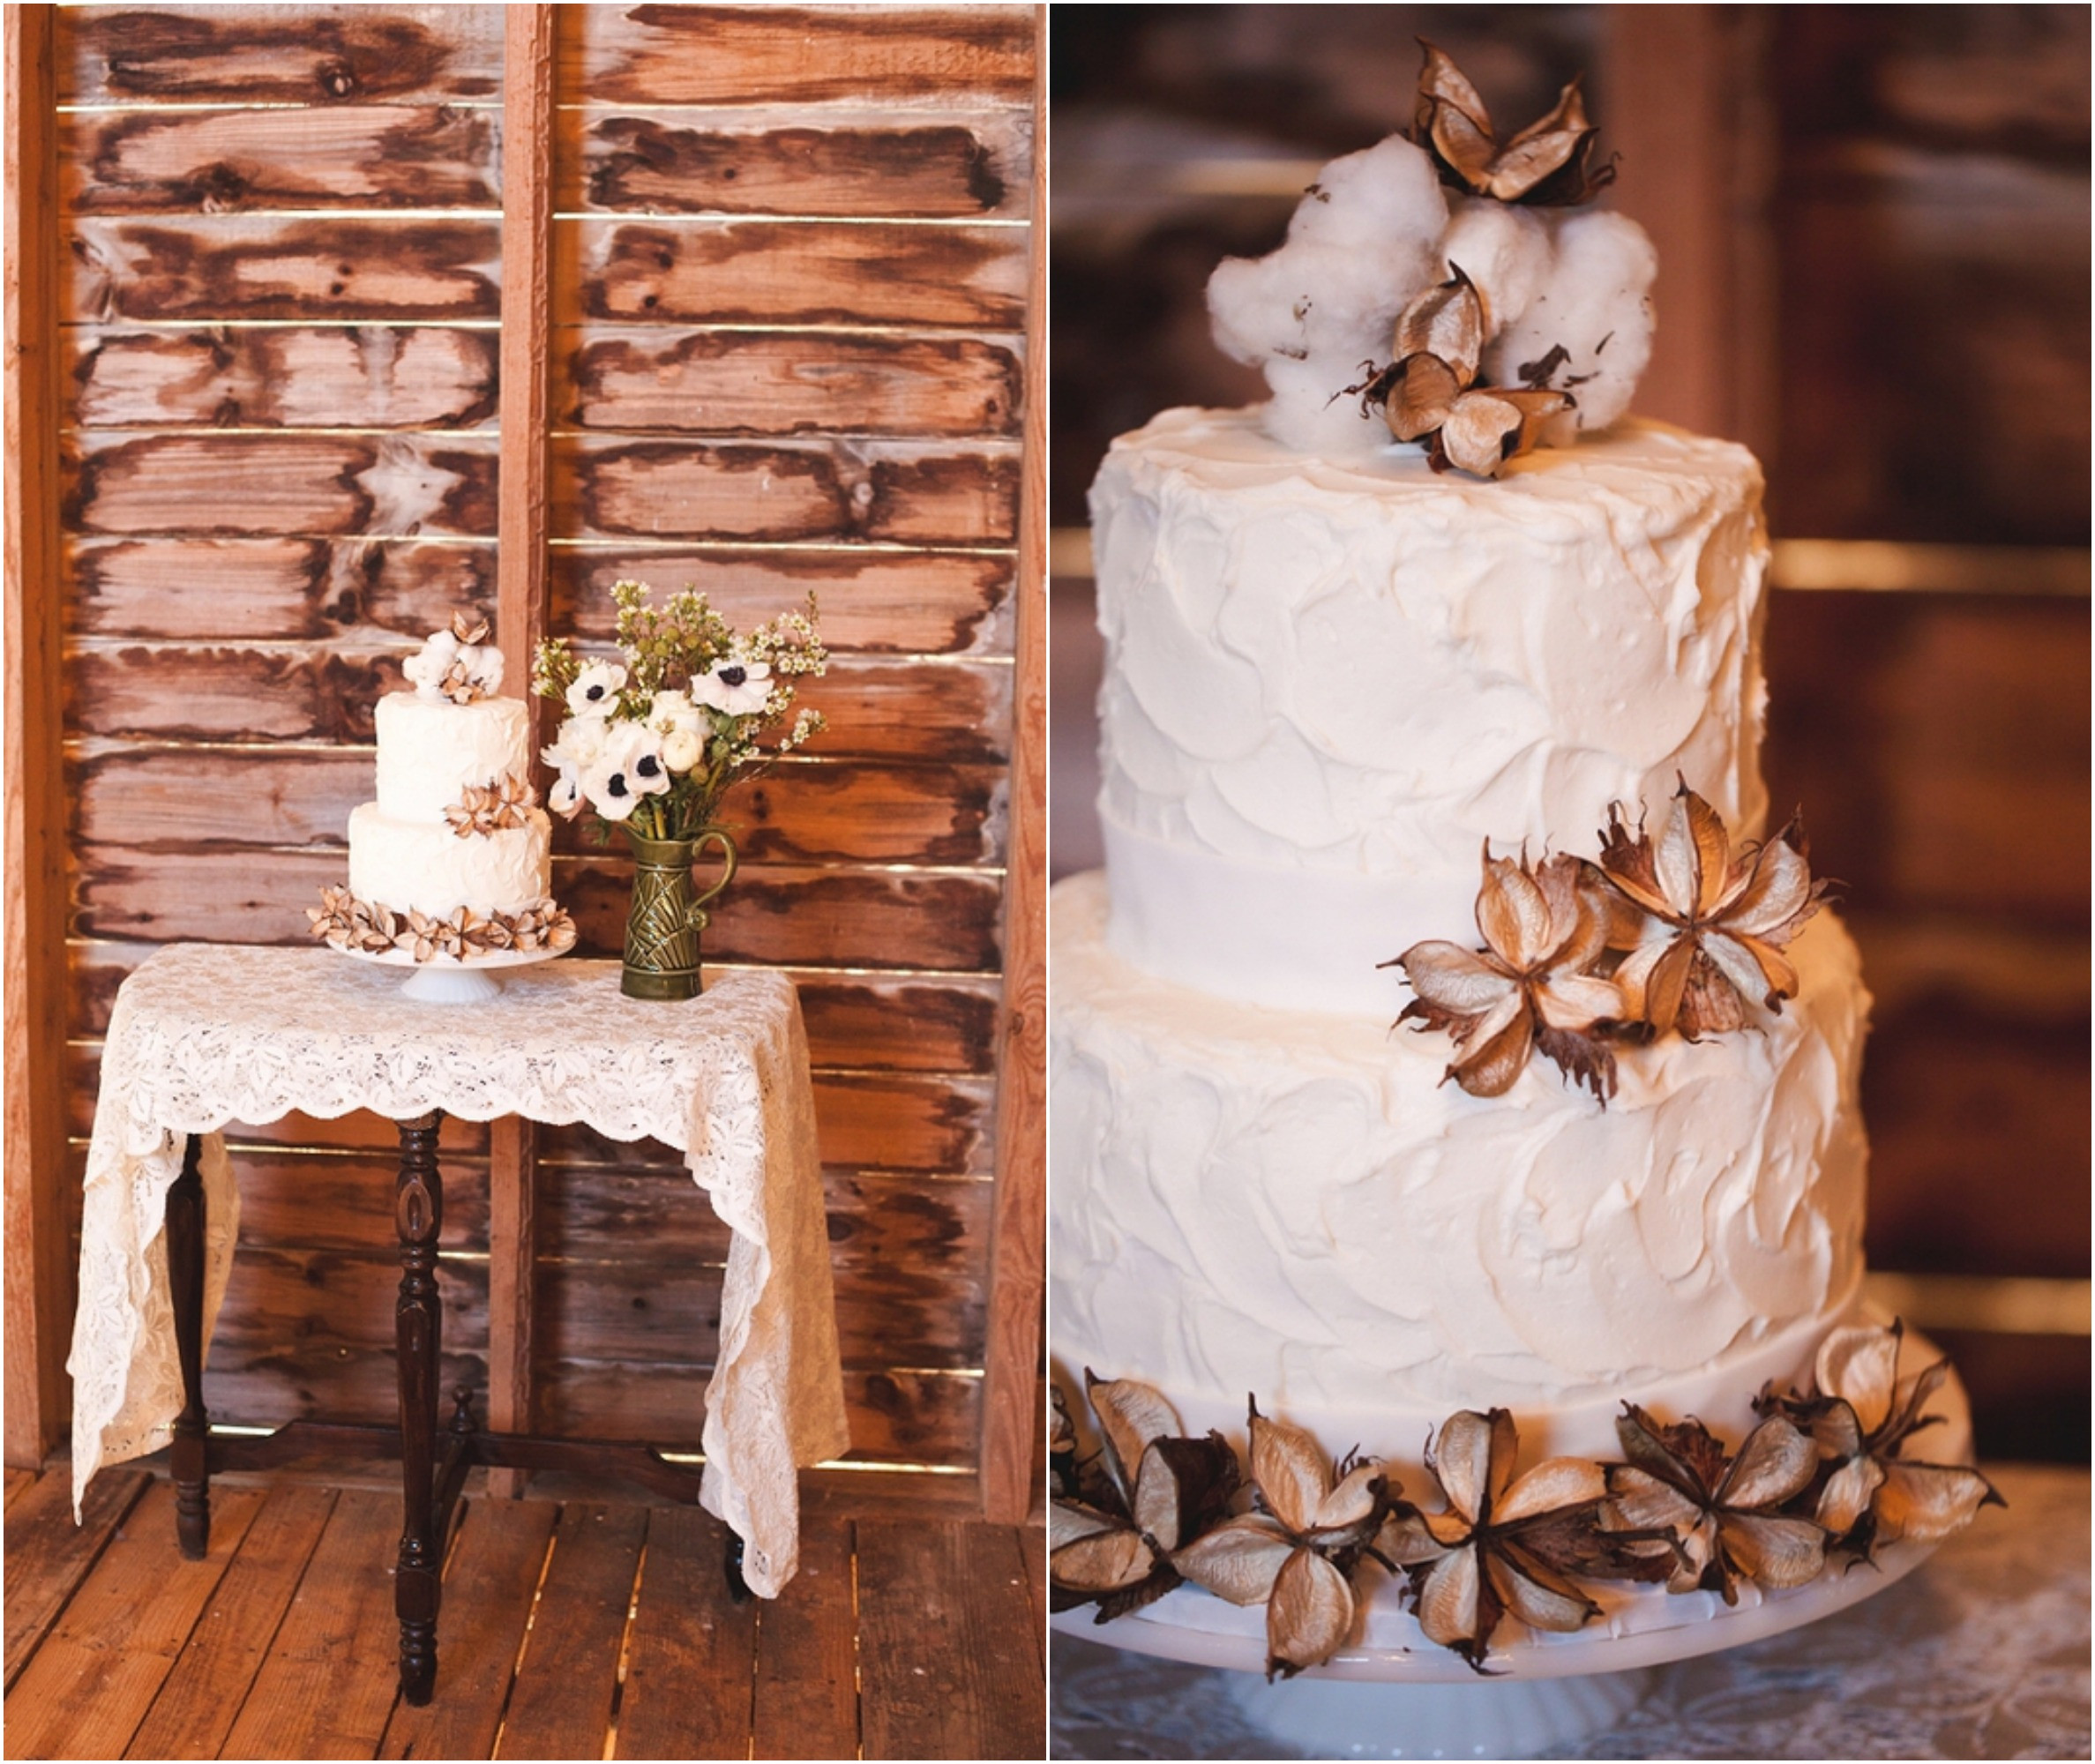 Wedding Cakes Rustic  Romantic Rustic Wedding Inspiration Rustic Wedding Chic